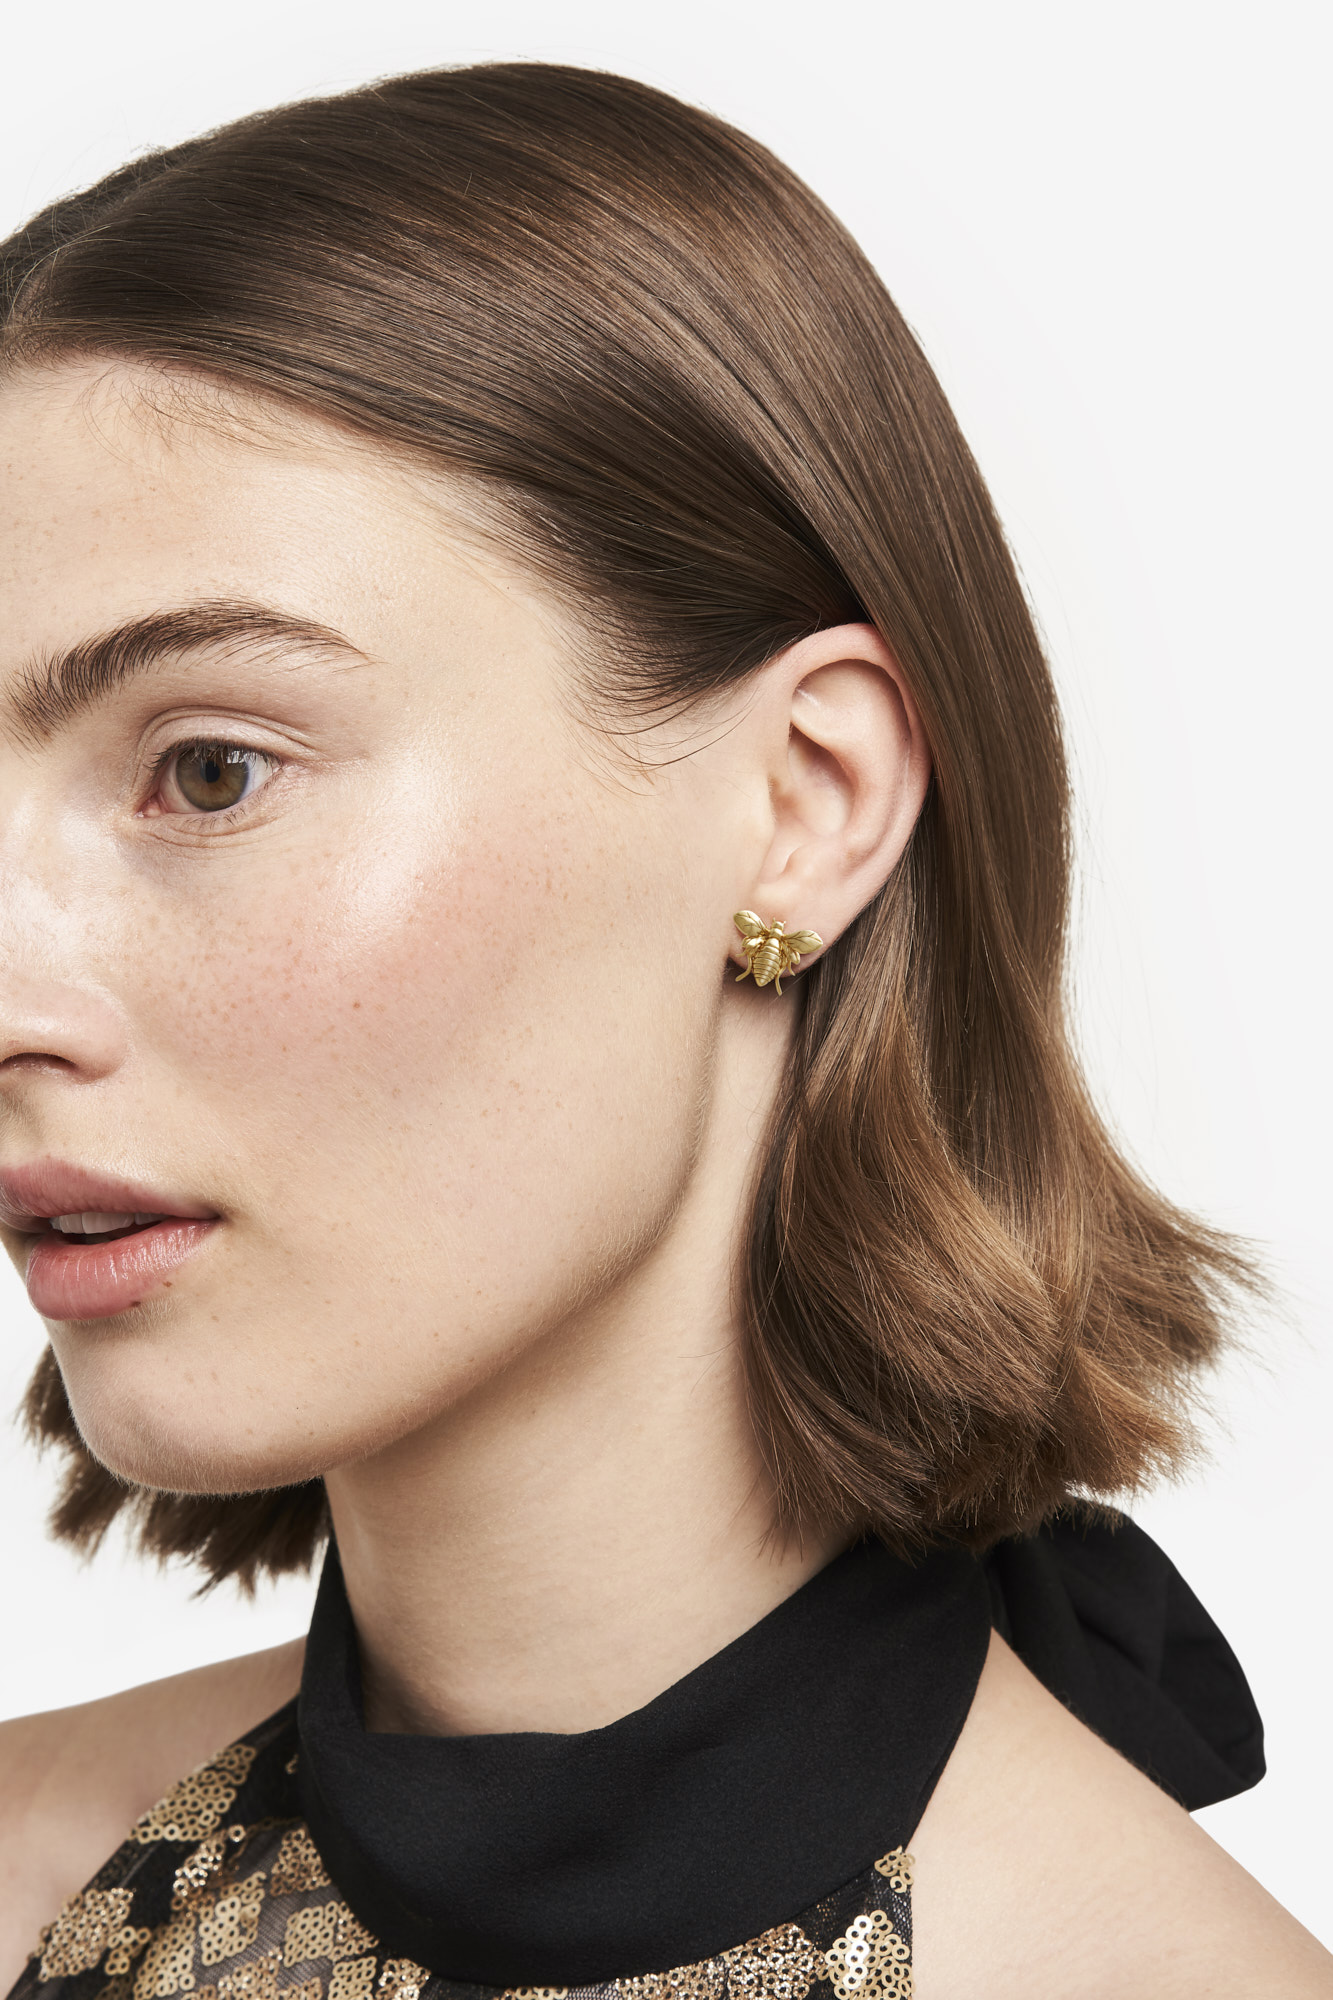 19-03-5-1-001-113-09_Bee Earring_Gold Plated_01